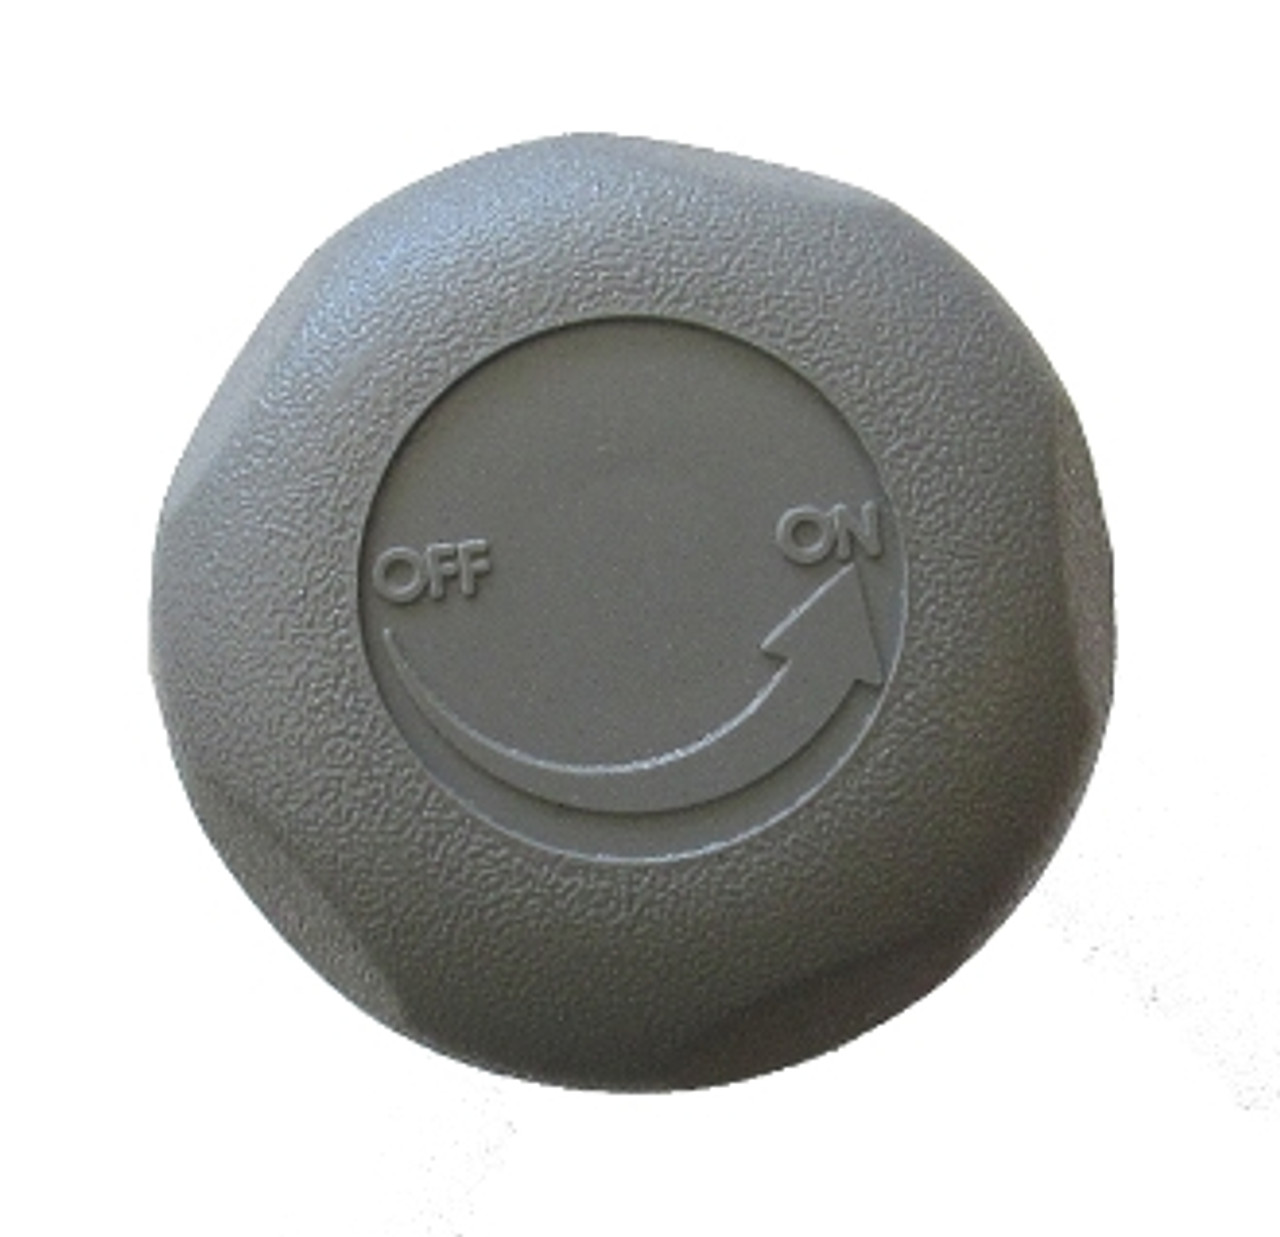 "Knob, Valve, On/Off, Waterway, 1"" Top Access, 5-Scallop, Gray, 6024357, 377337WW"